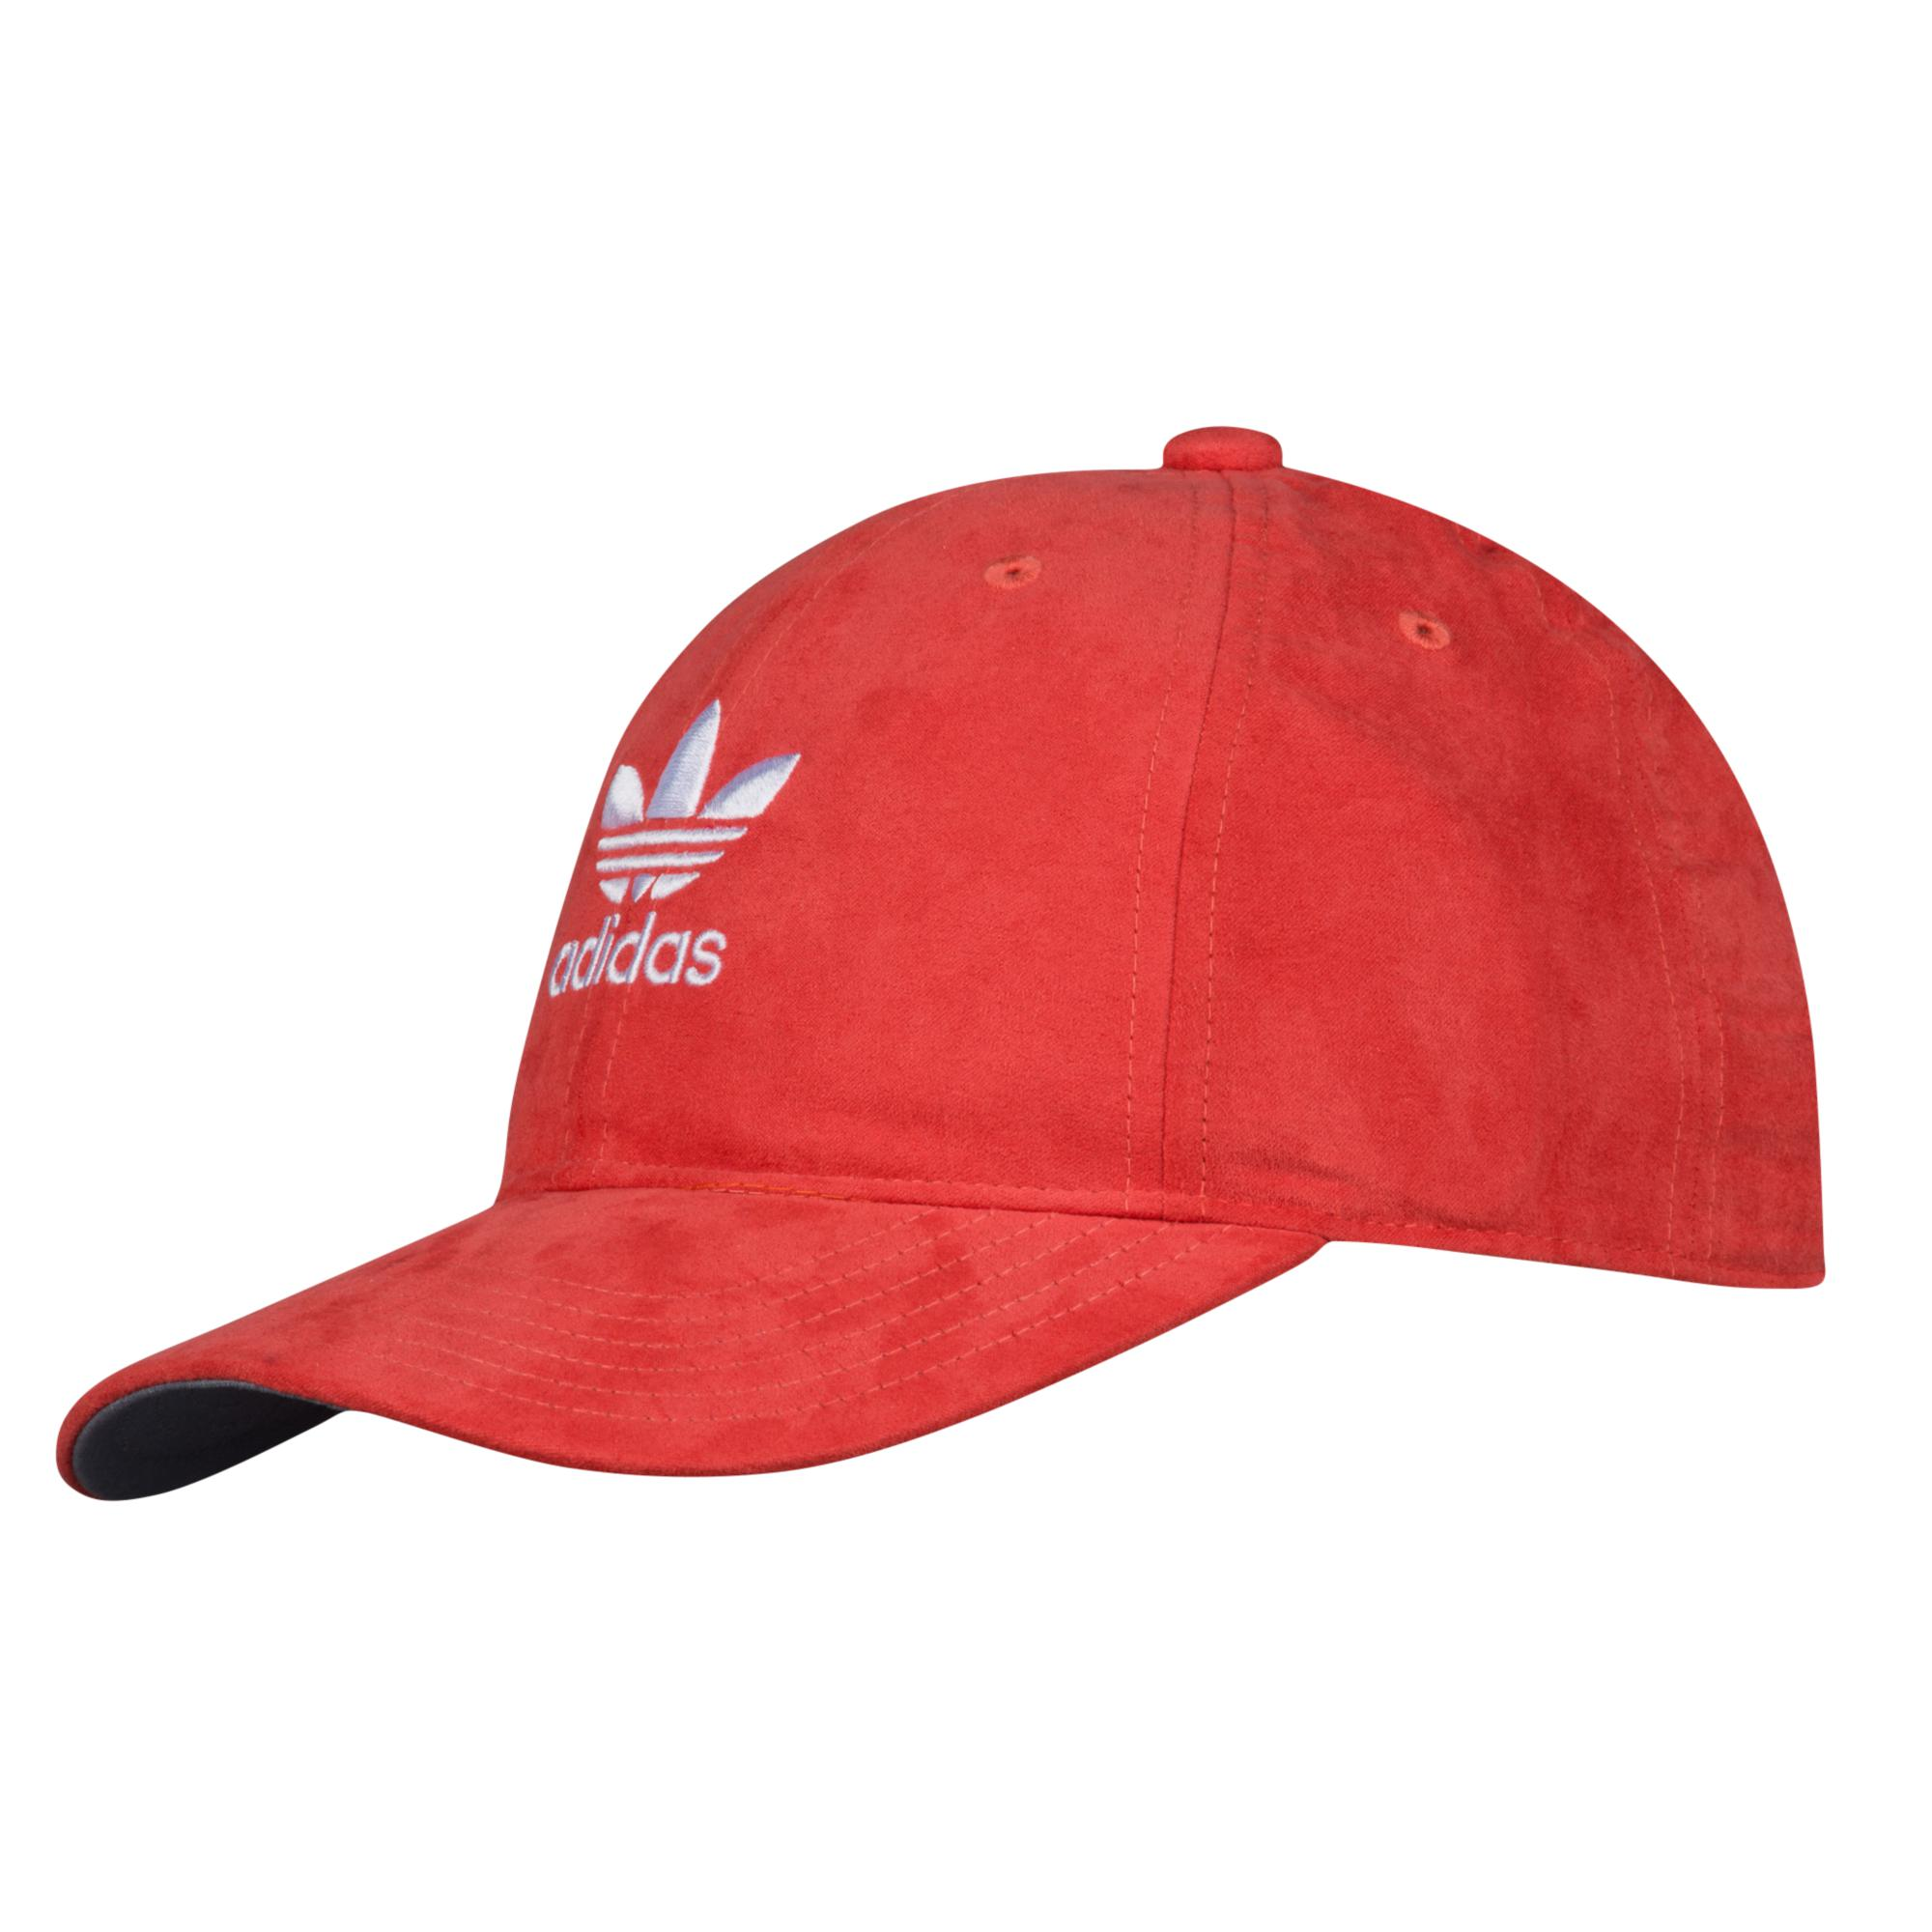 240dabc09c8e9 adidas Originals Suede Relaxed Strapback Hat in Red - Save 58% - Lyst